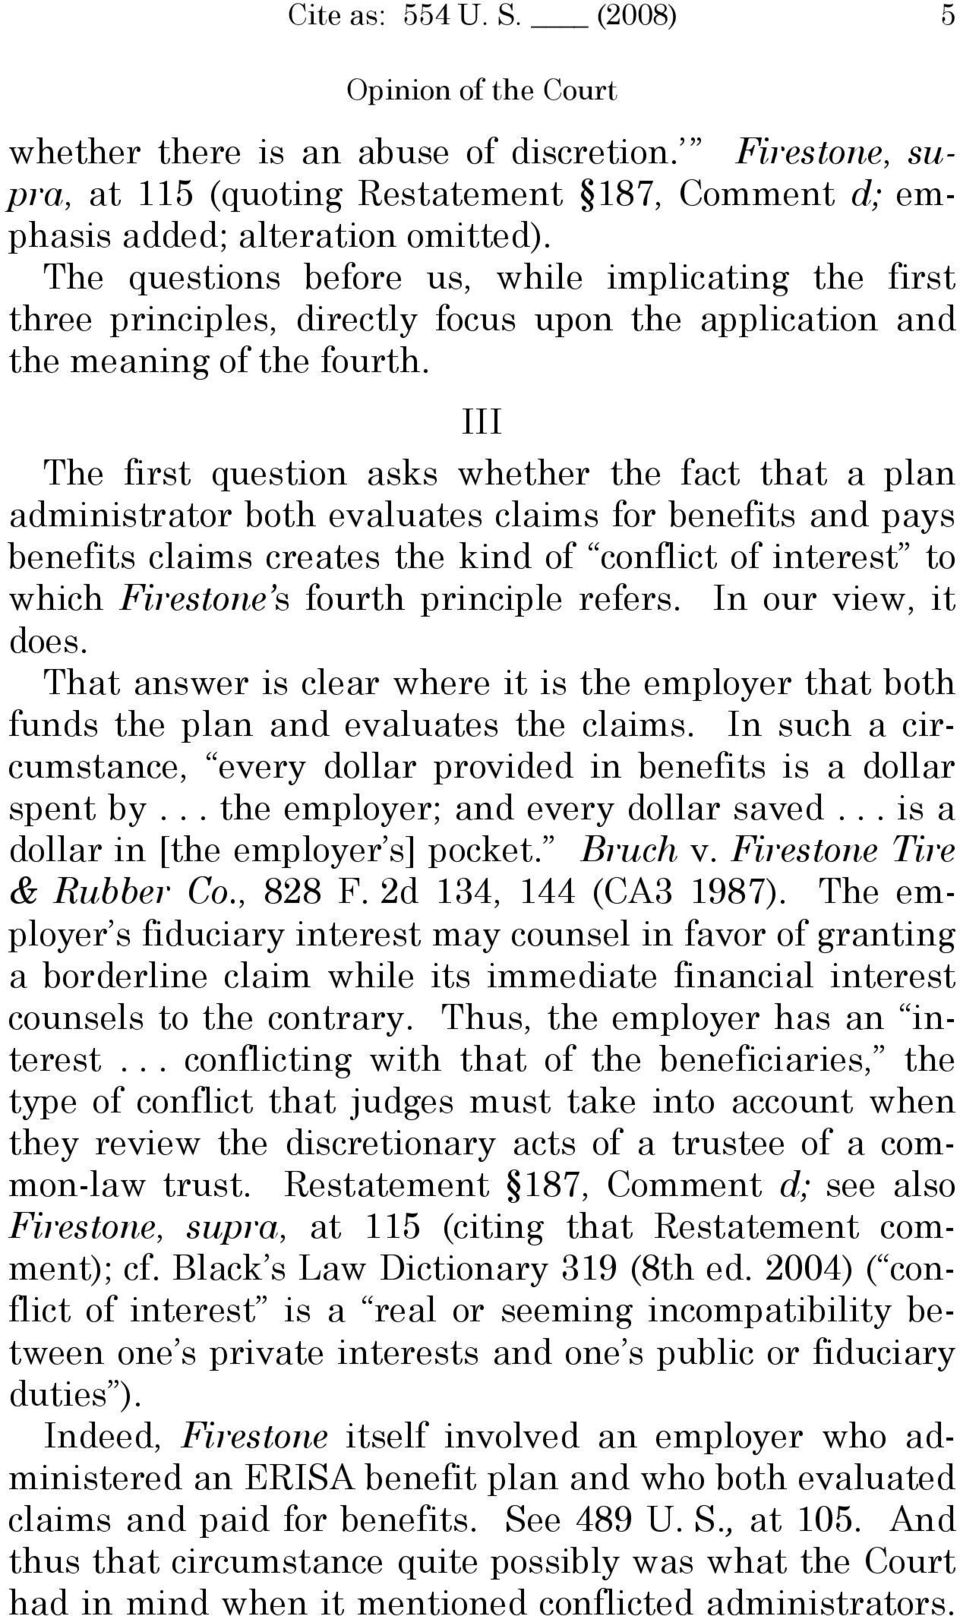 III The first question asks whether the fact that a plan administrator both evaluates claims for benefits and pays benefits claims creates the kind of conflict of interest to which Firestone s fourth